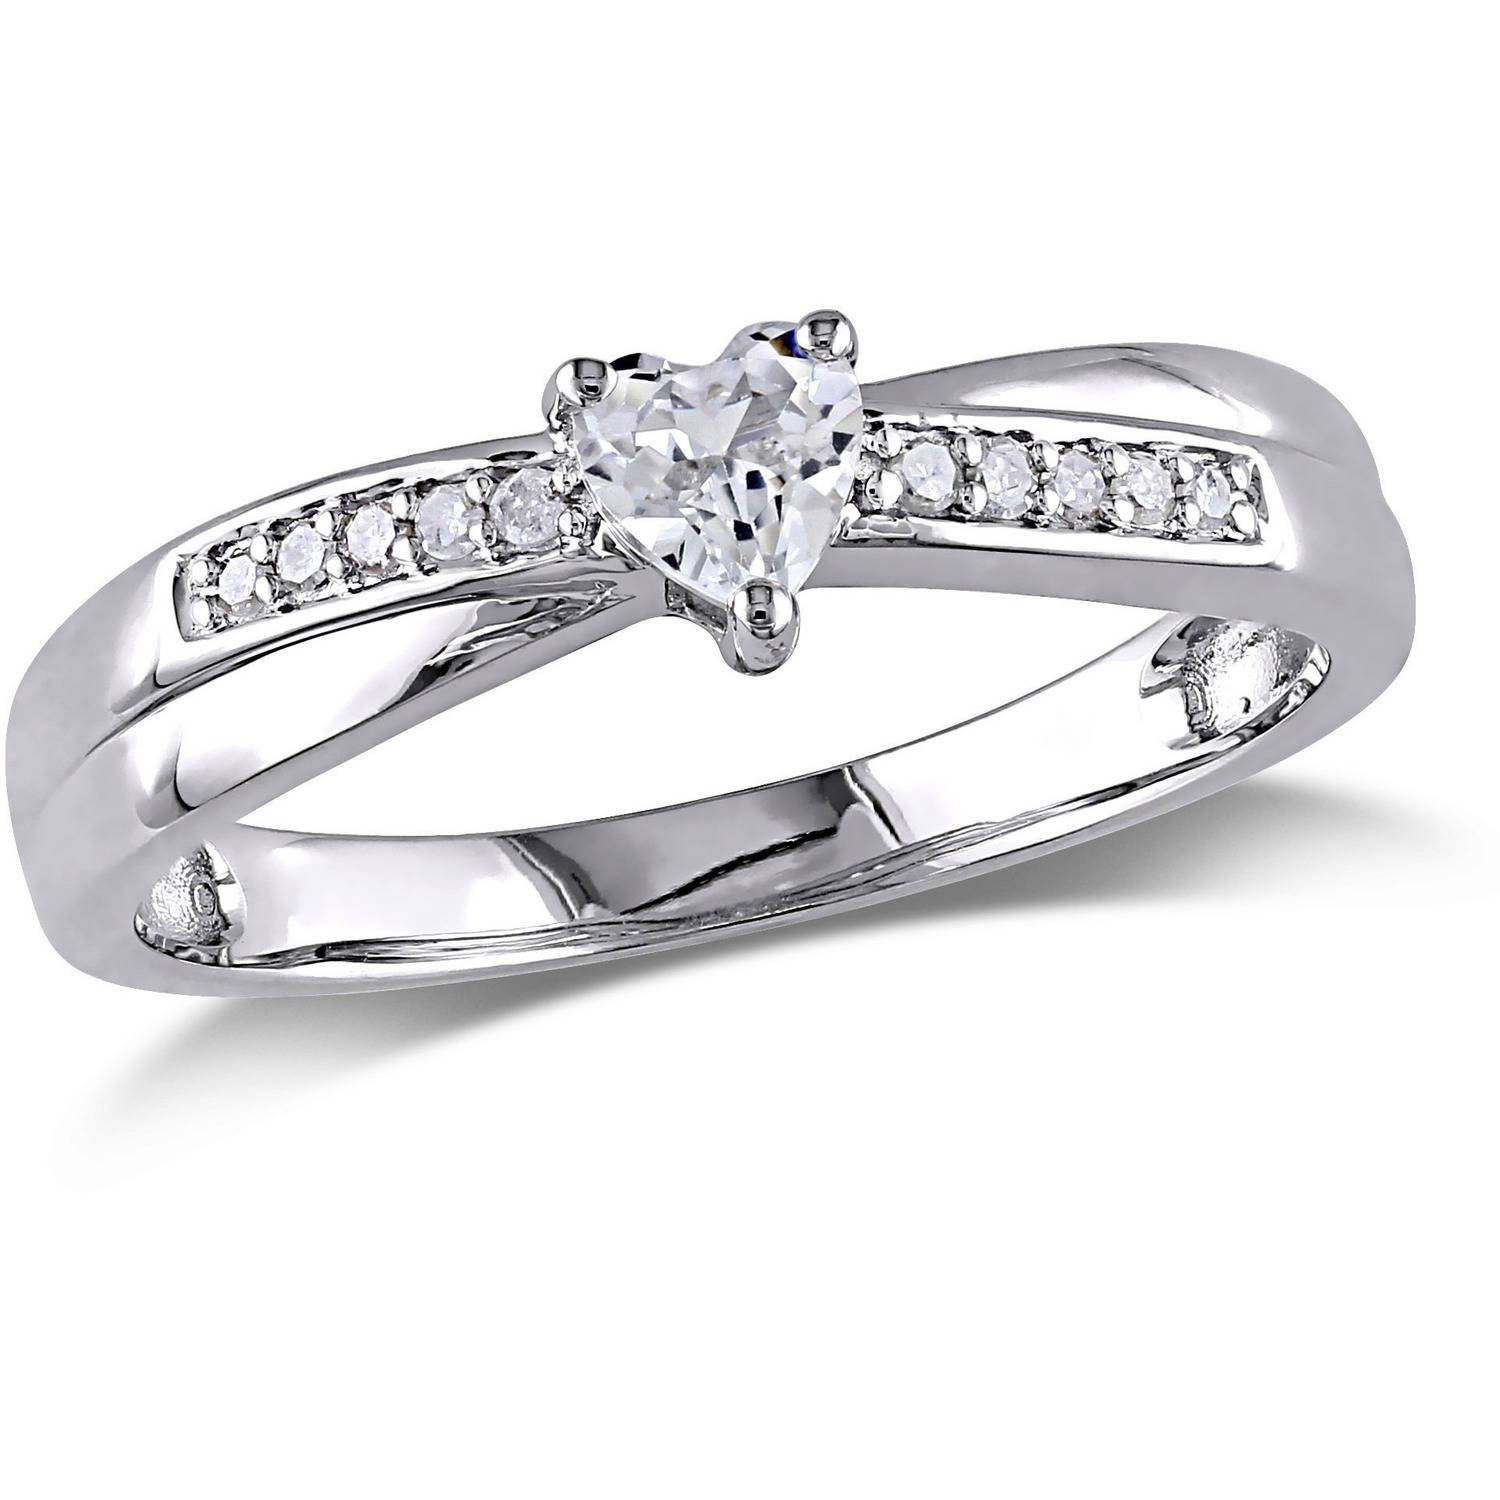 bridal ip canada en diamond engagement t rings silver halo w tw walmart miabella set carat sterling